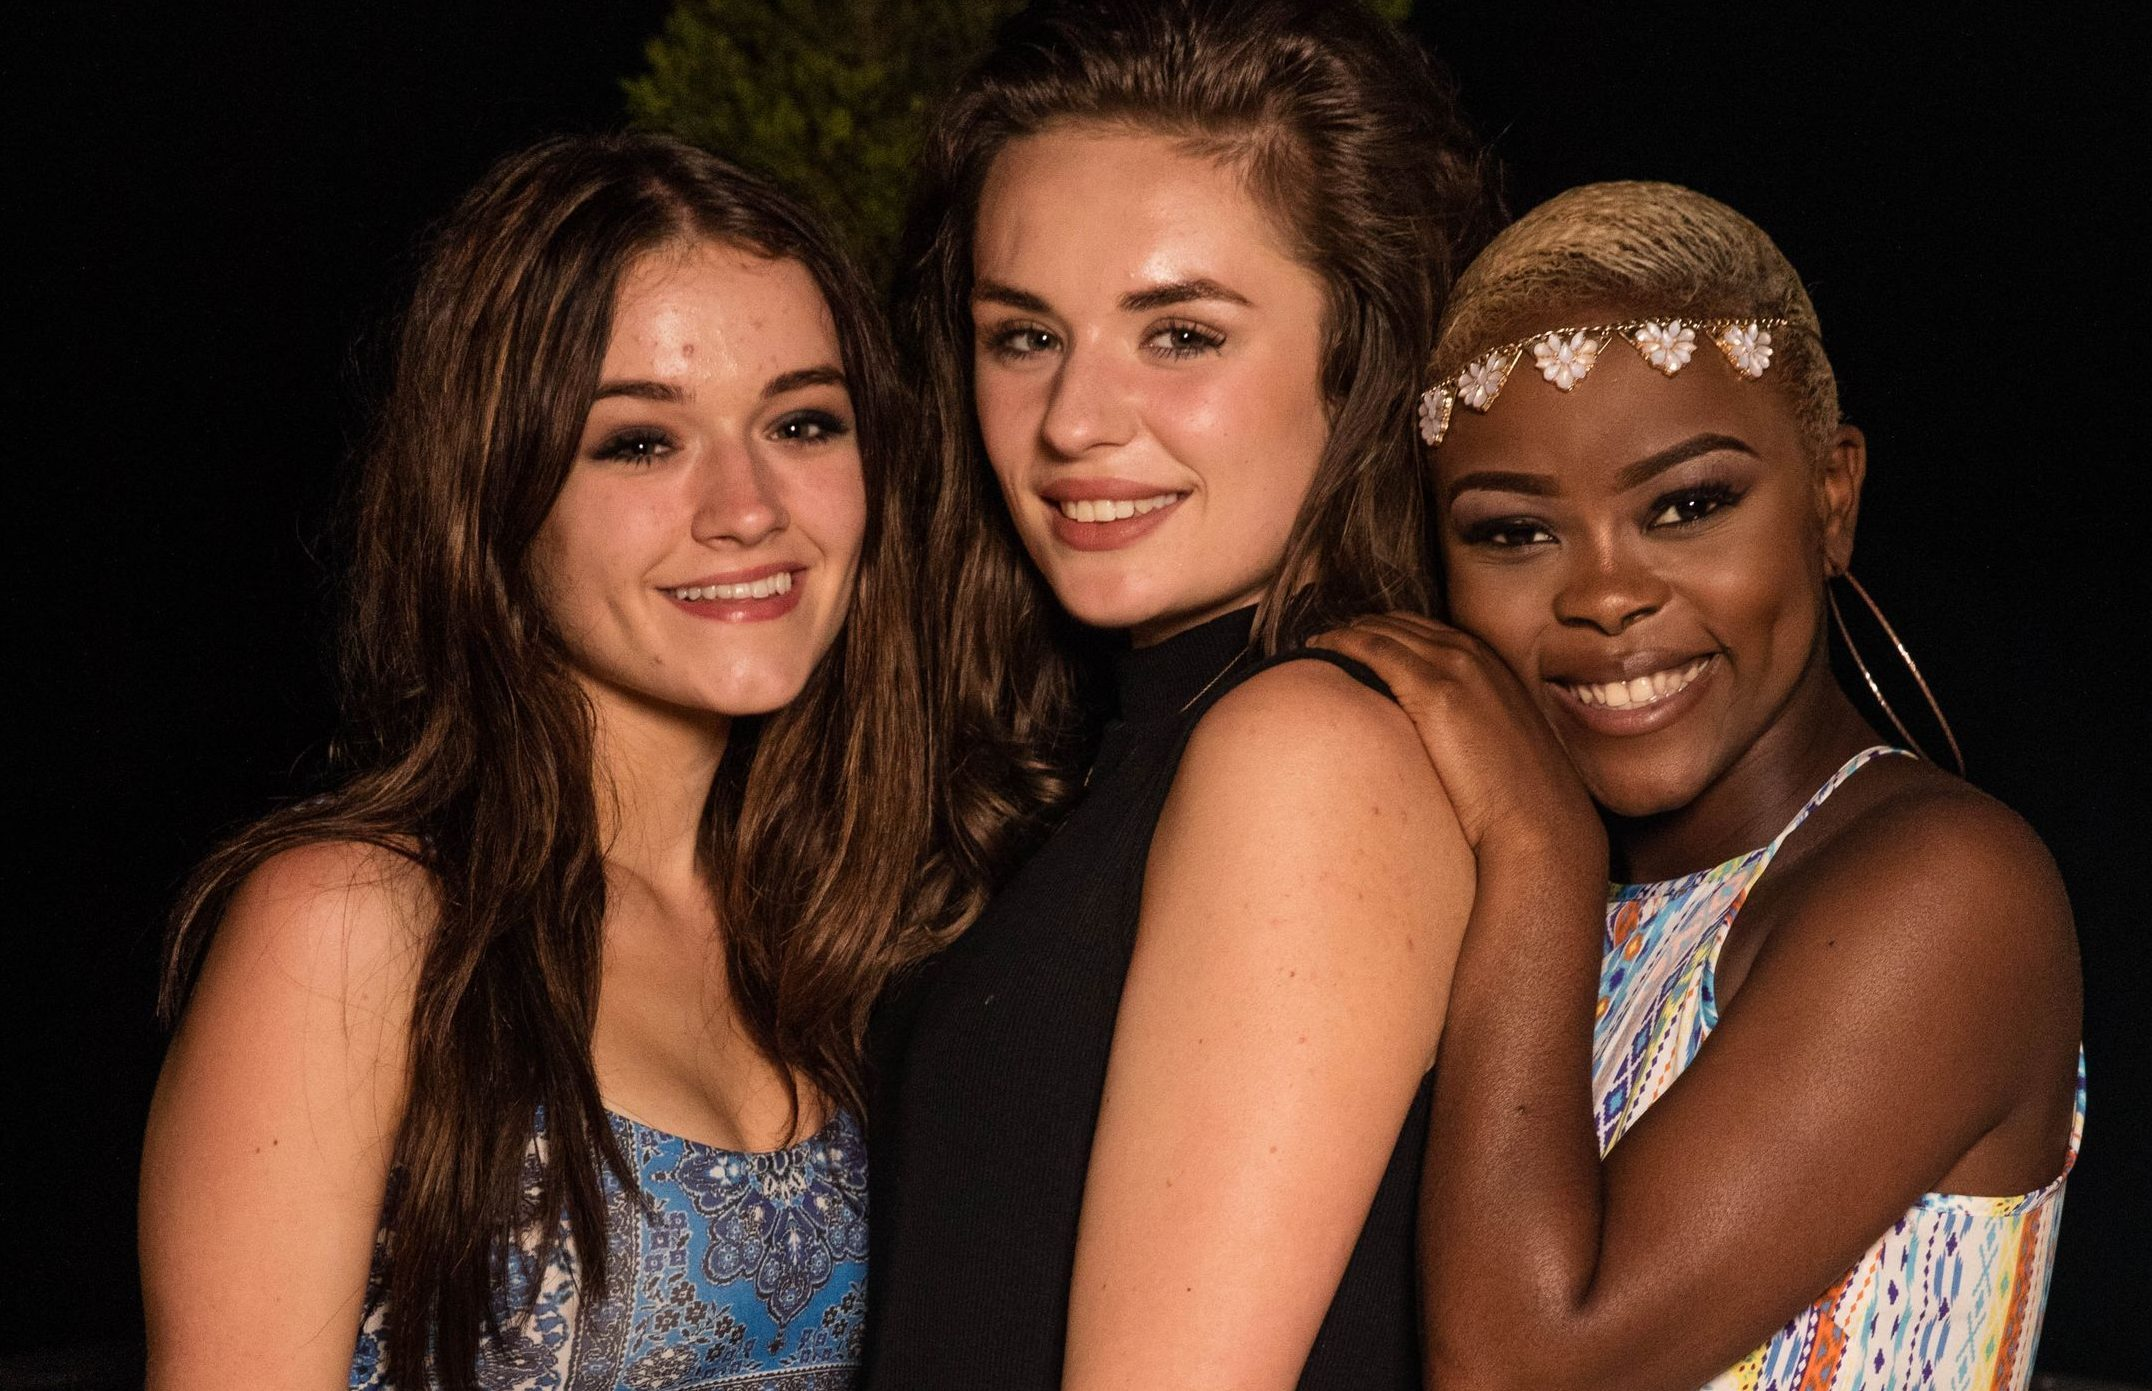 Emily Middlemas, Samantha Lavery and Gifty Louise.